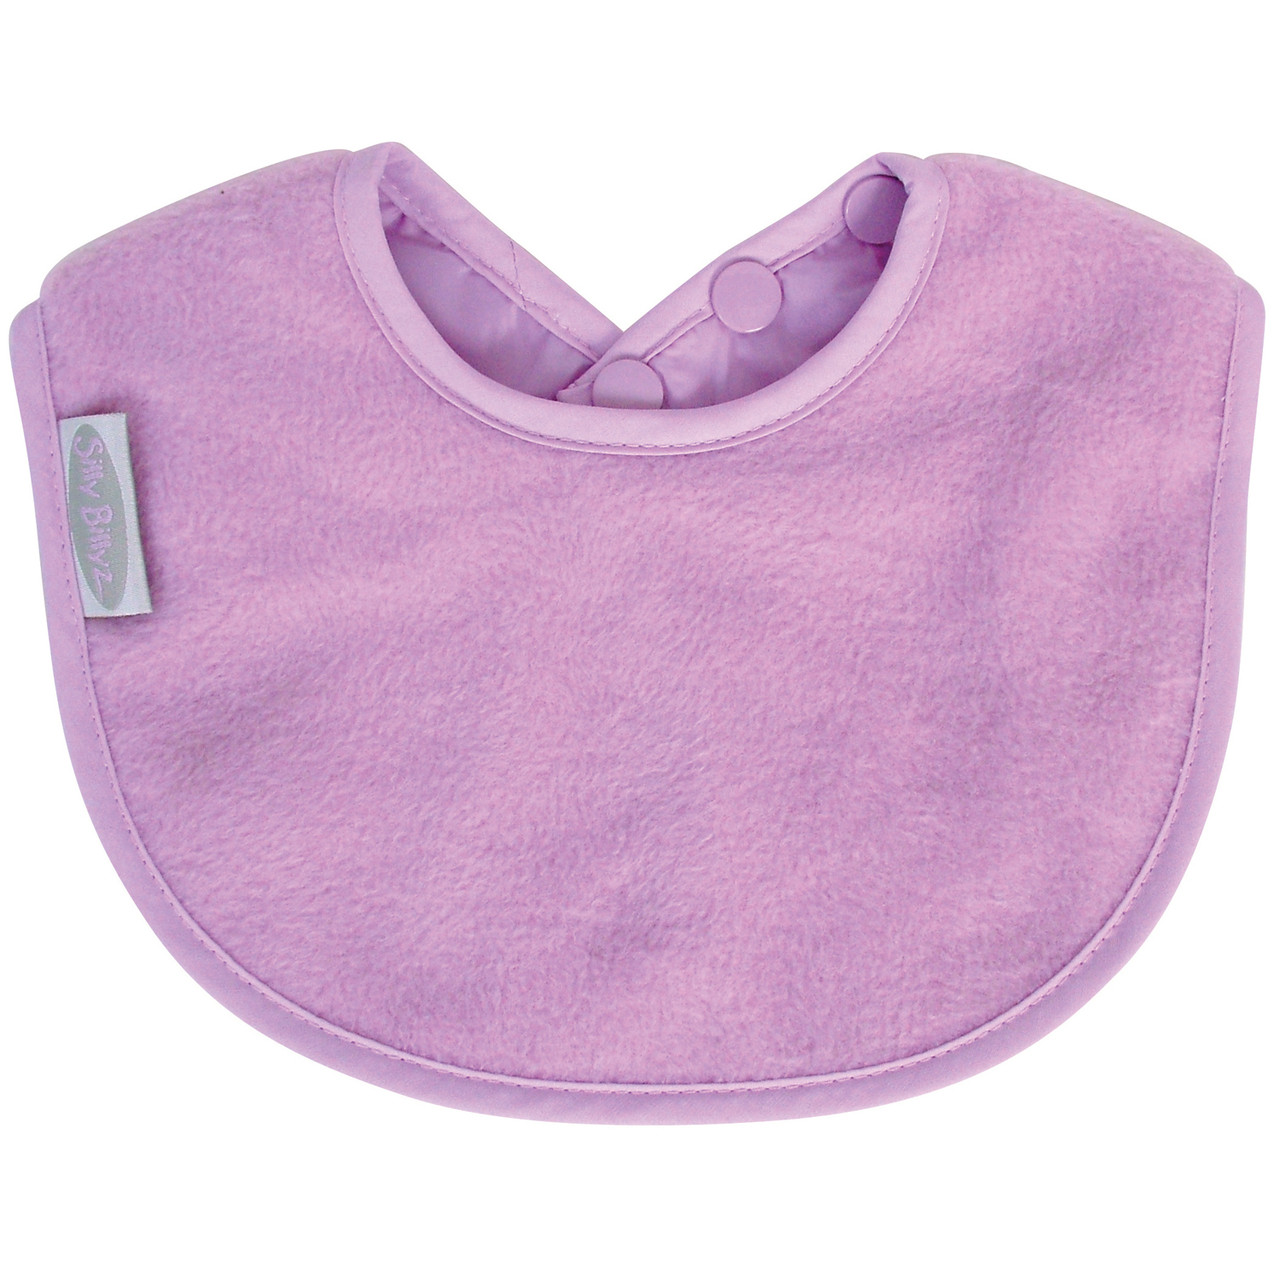 mauve fleece biblet silly billyz best bibs eversized just right to be your baby\u0027s first bib! the soft and liquid repellent fabric